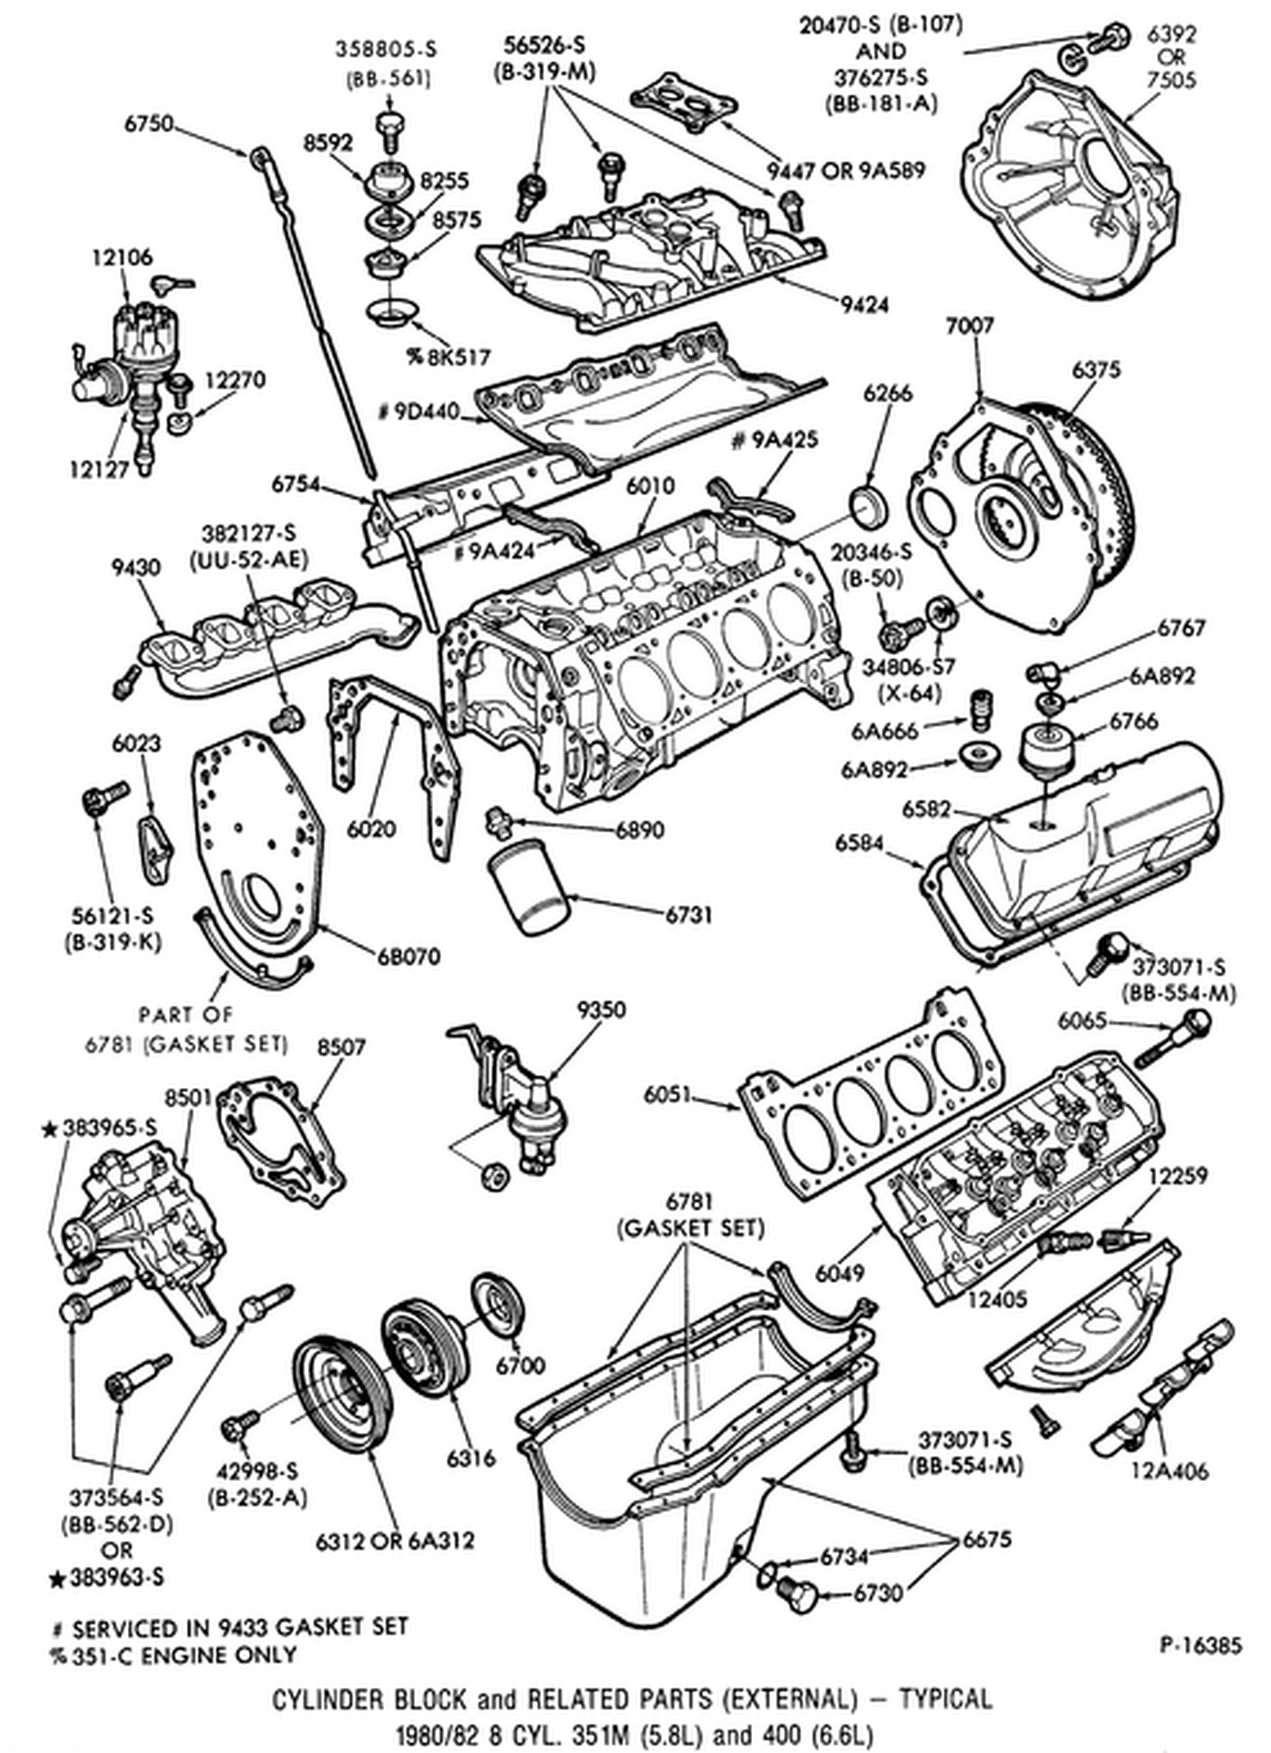 [DIAGRAM] 1978 Ford 351 Engine Diagram FULL Version HD